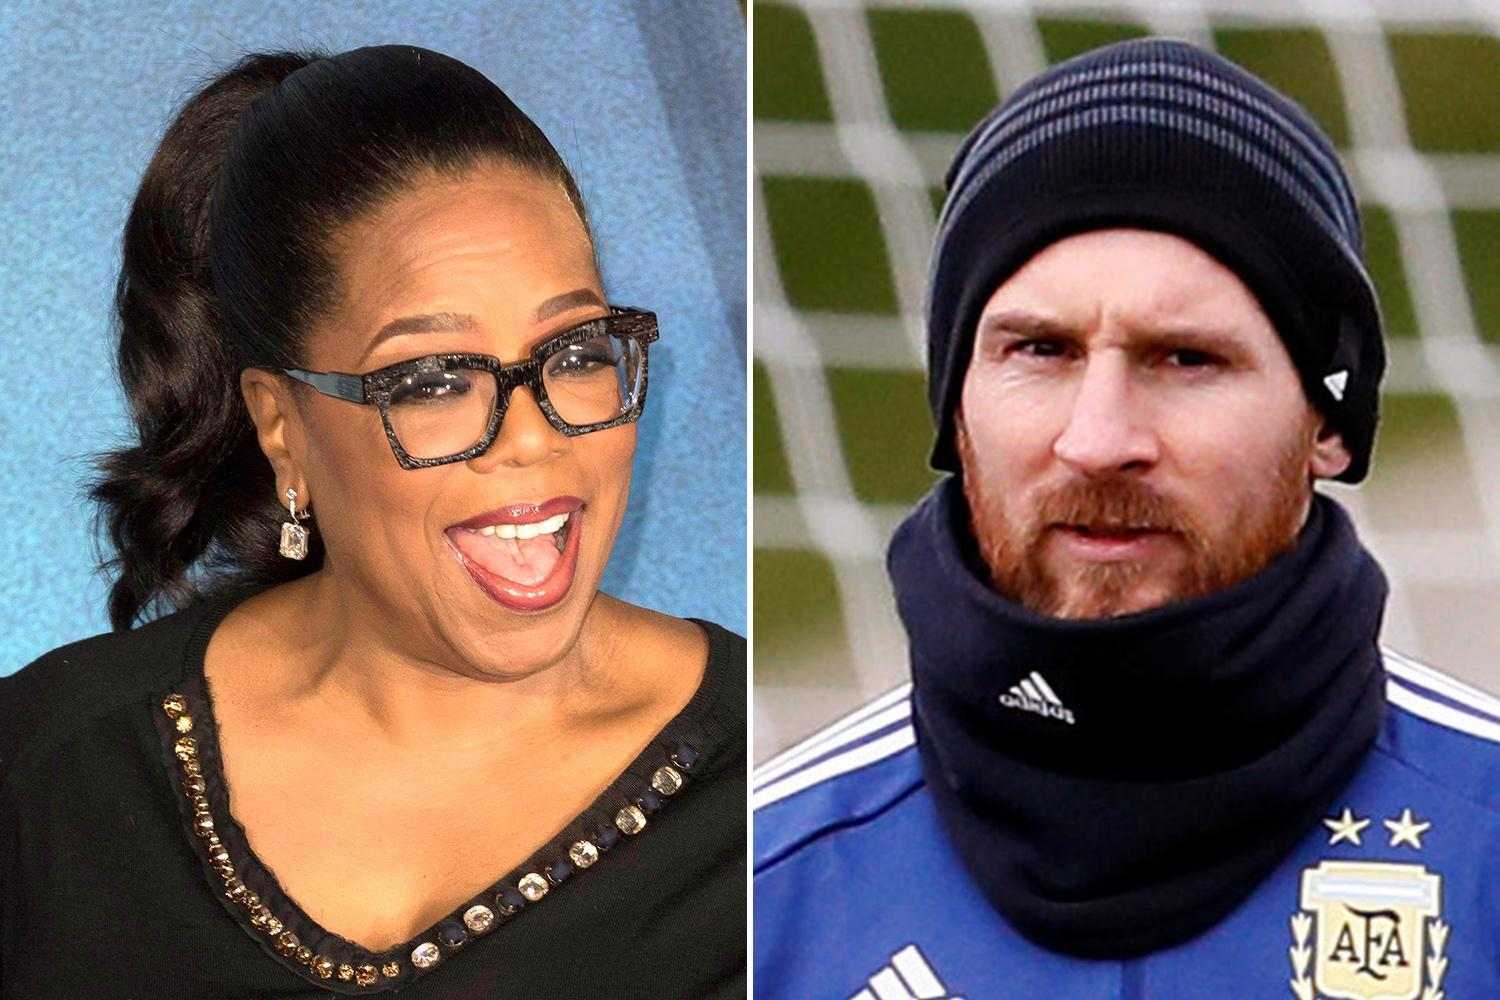 Oprah Winfrey gives advice to Lionel Messi ahead of World Cup 2018